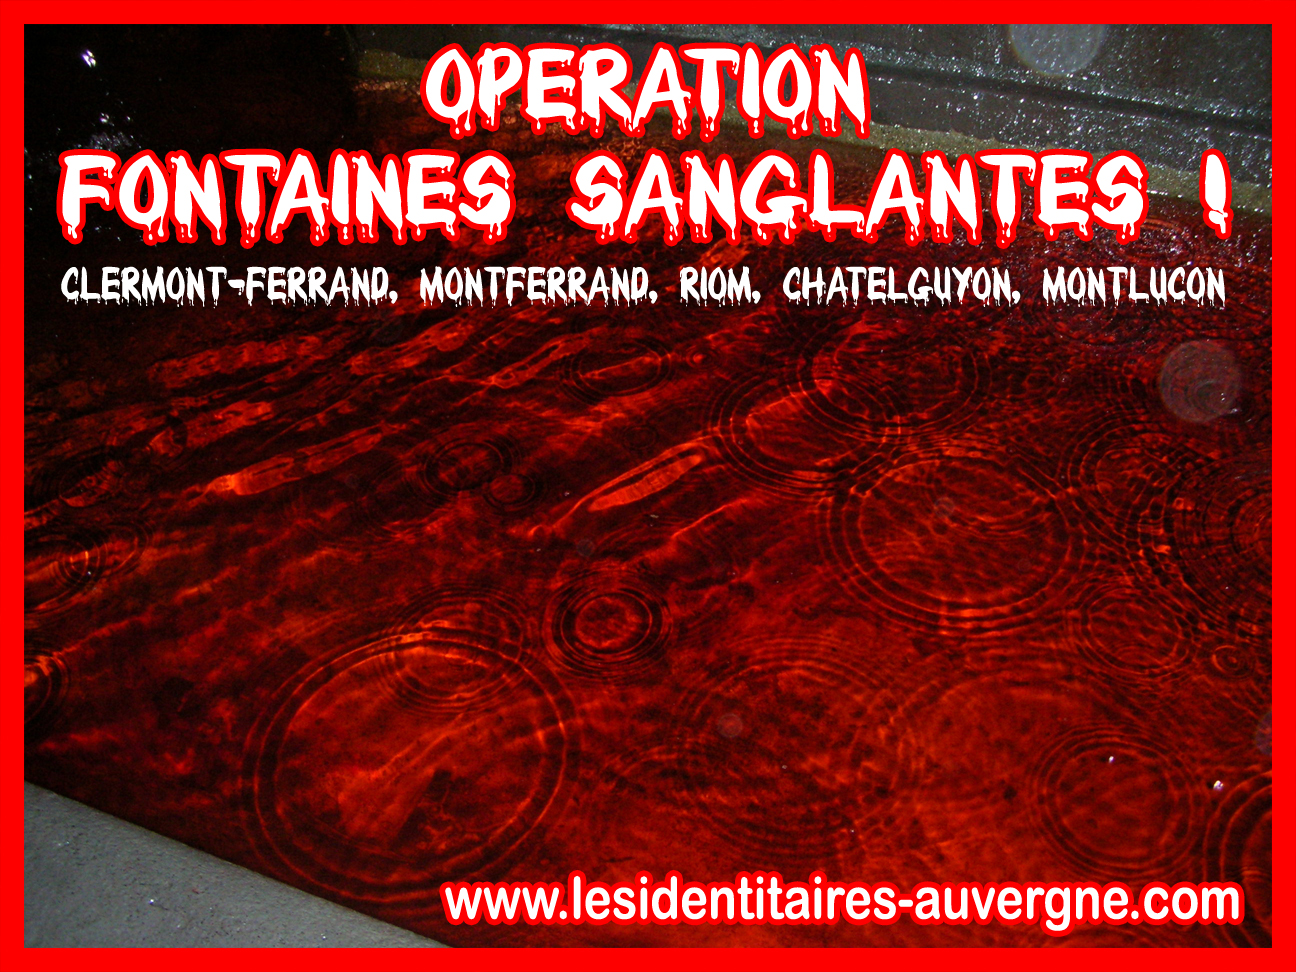 operationfontainessanglantes.jpg